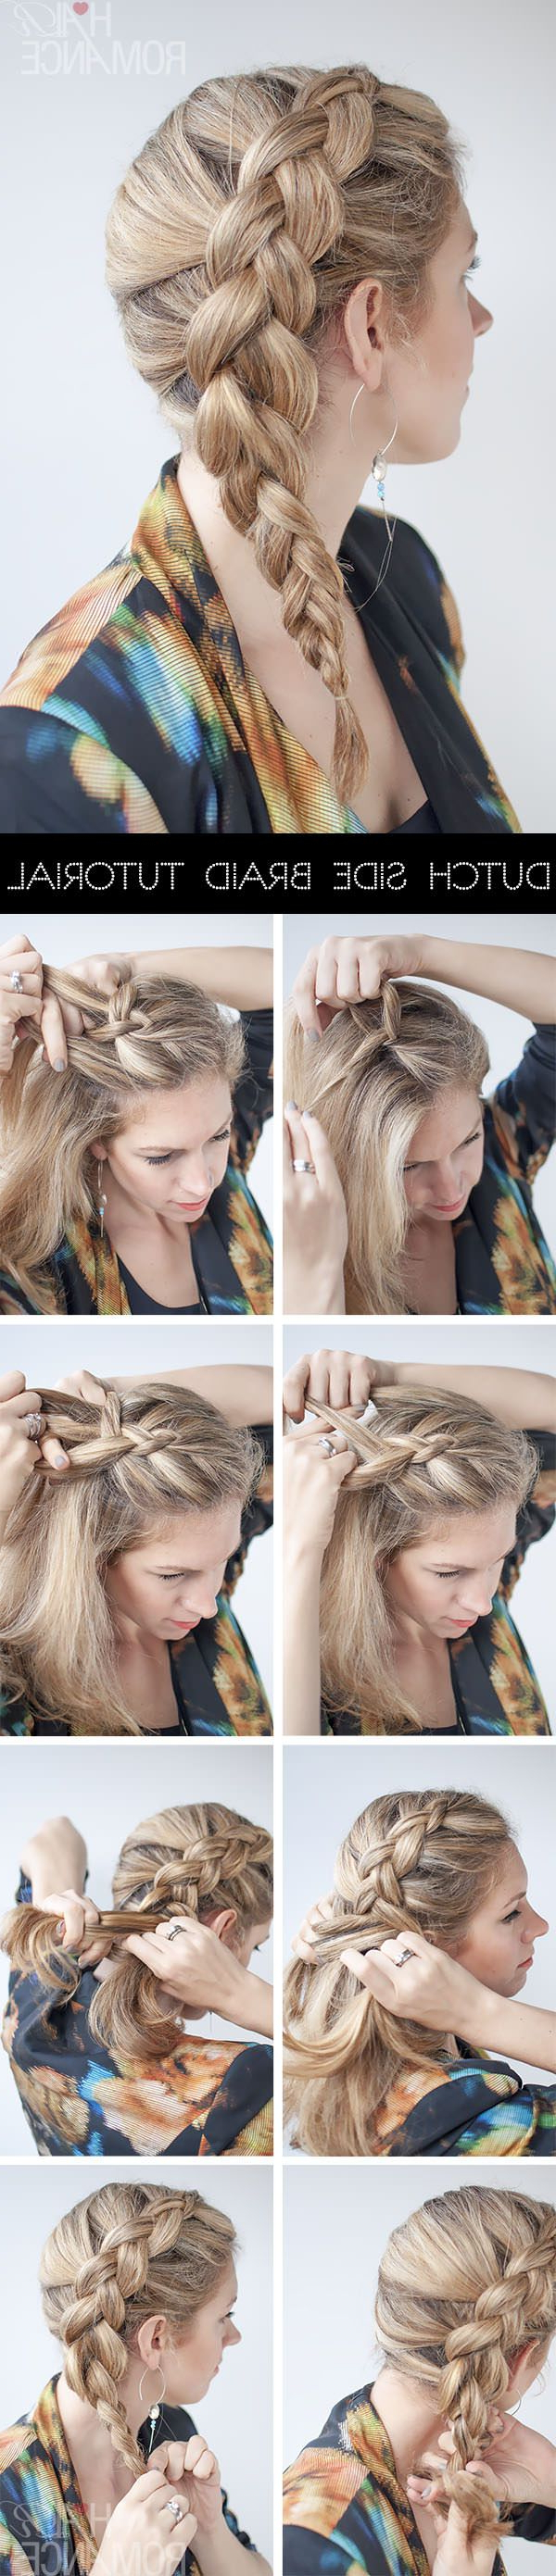 17 Stunning Dutch Braid Hairstyles With Tutorials – Pretty Intended For Preferred Side Dutch Braided Hairstyles (Gallery 7 of 20)